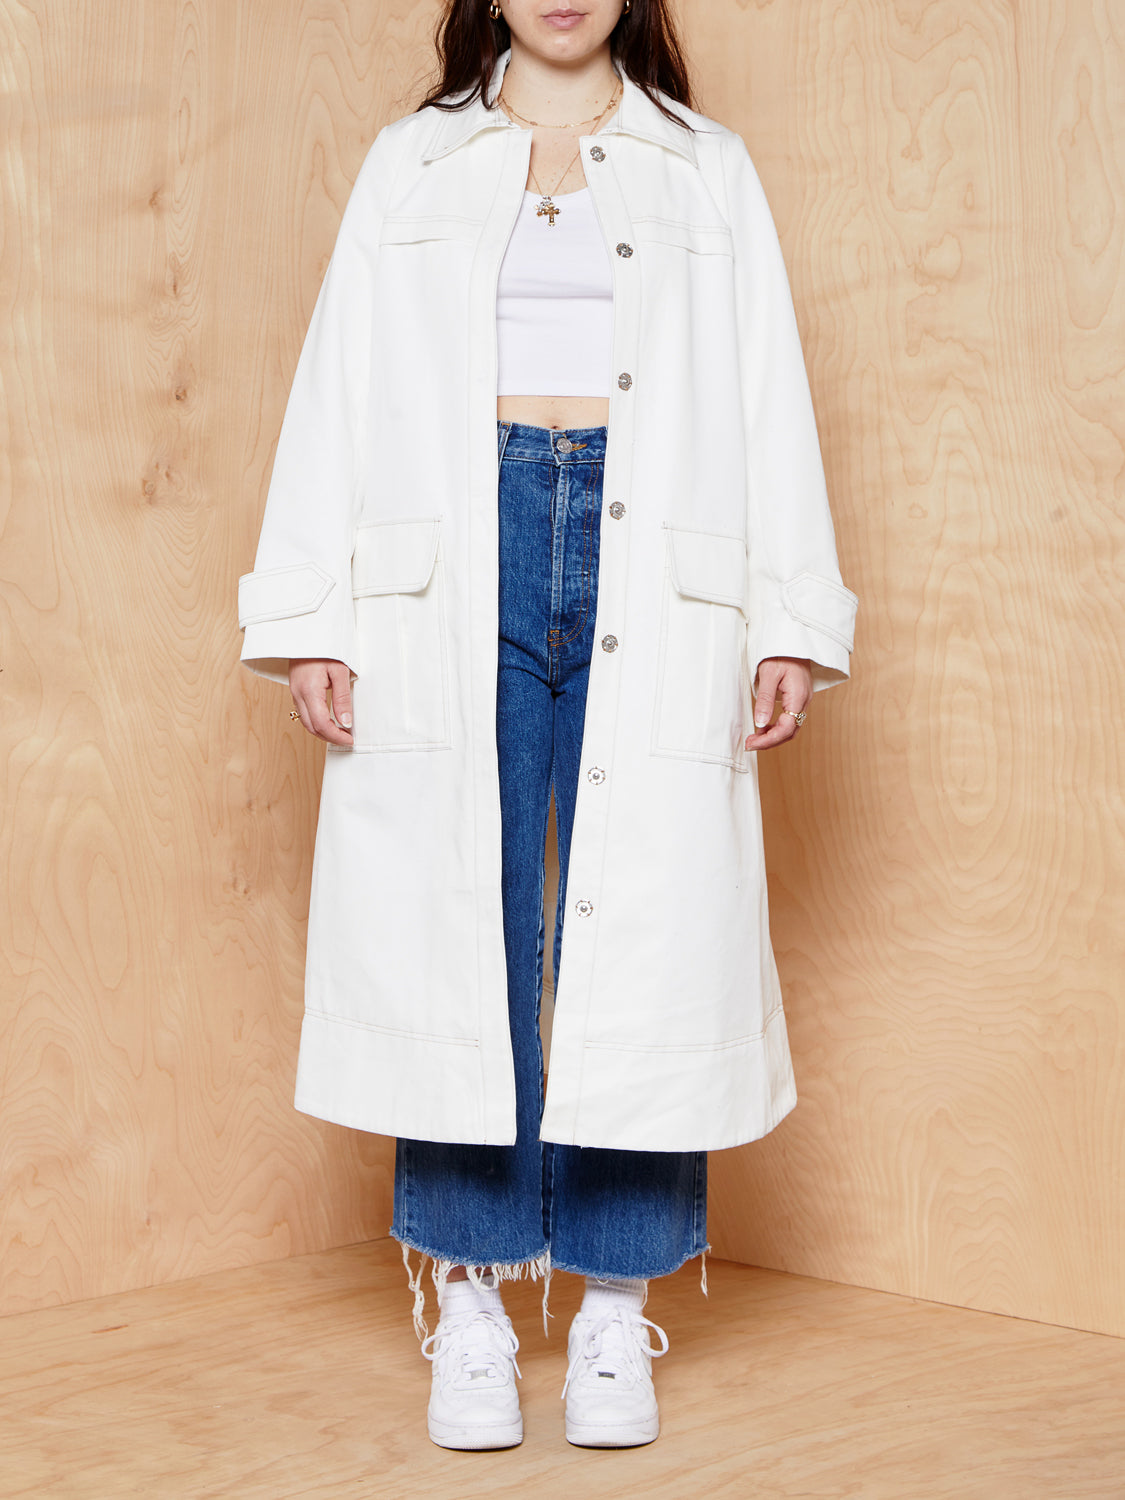 ASOS White Coat with Contrast Stitching